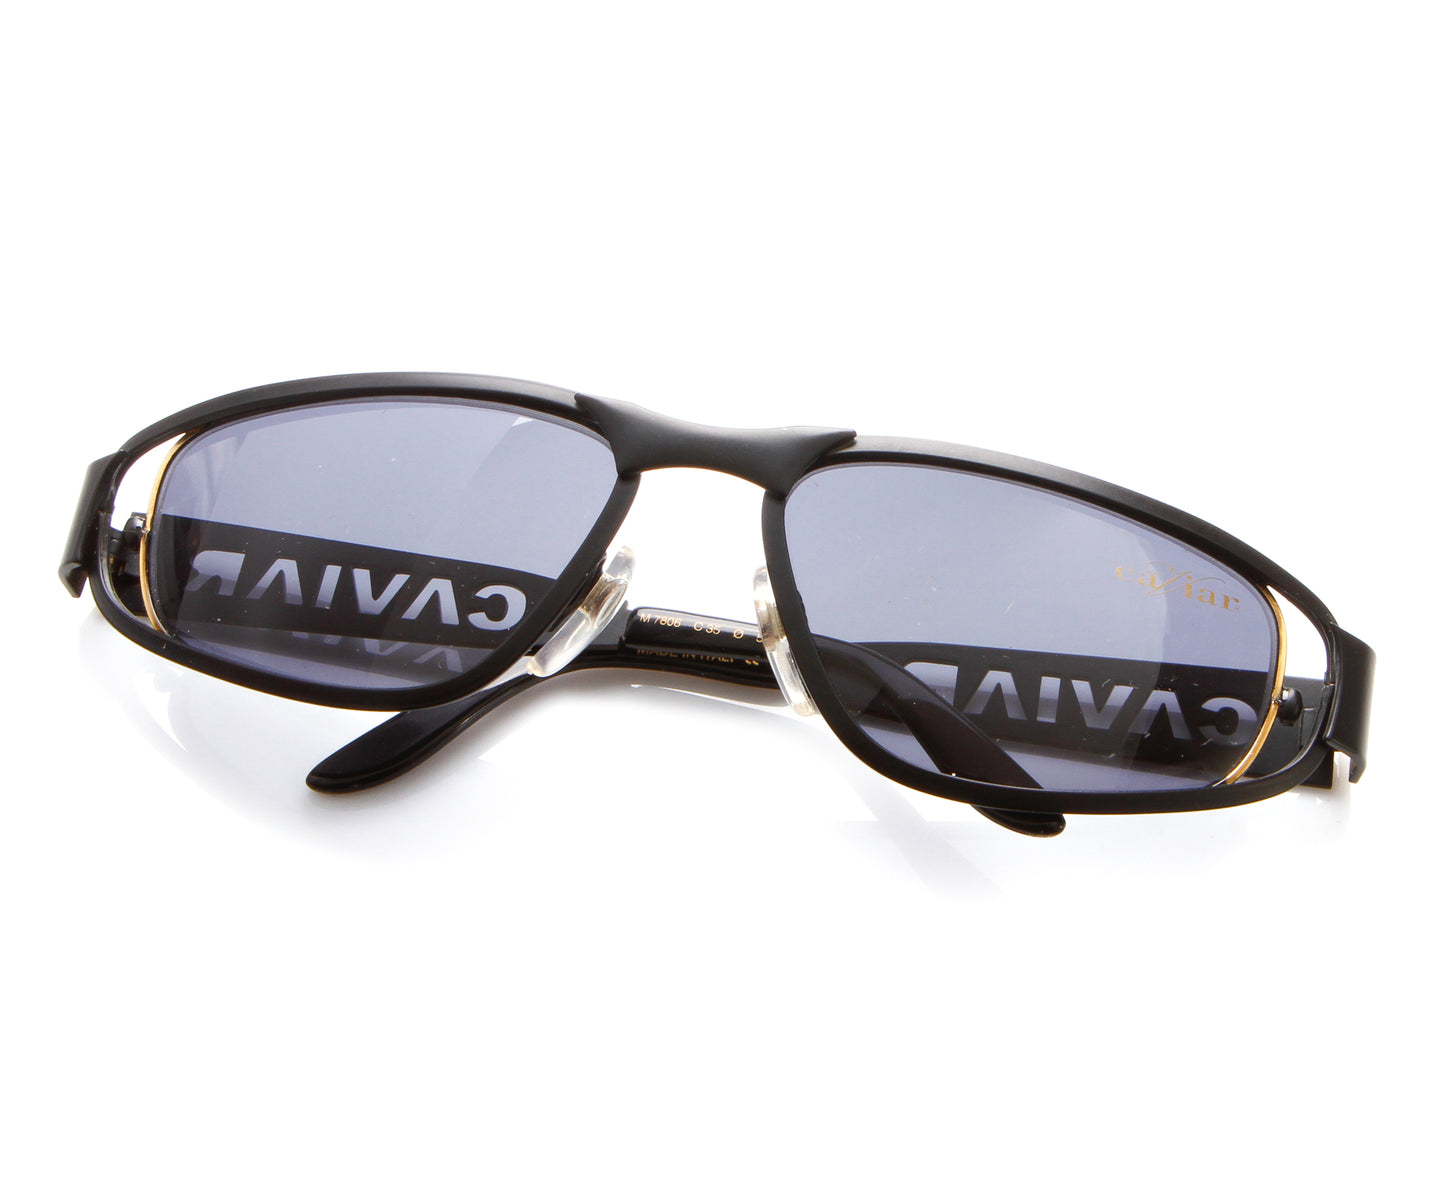 Caviar M7806 C35, Caviar Collection , glasses frames, eyeglasses online, eyeglass frames, mens glasses, womens glasses, buy glasses online, designer eyeglasses, vintage sunglasses, retro sunglasses, vintage glasses, sunglass, eyeglass, glasses, lens, vintage frames company, vf